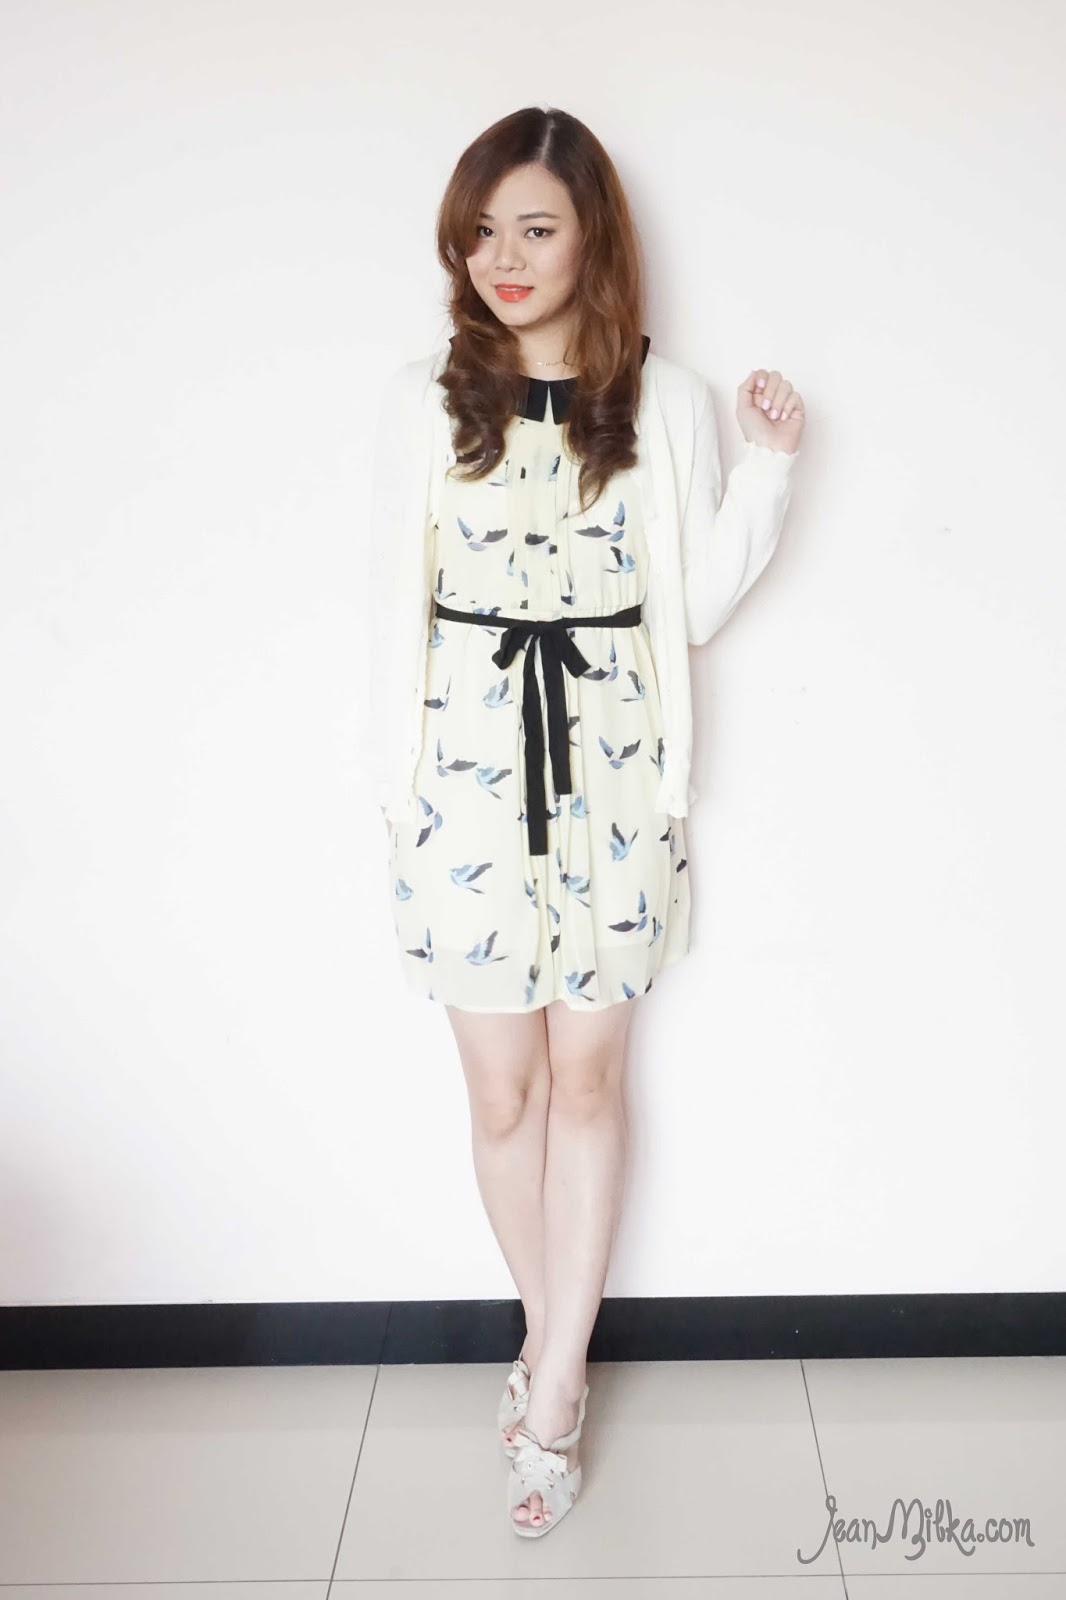 kawaii style with a dress